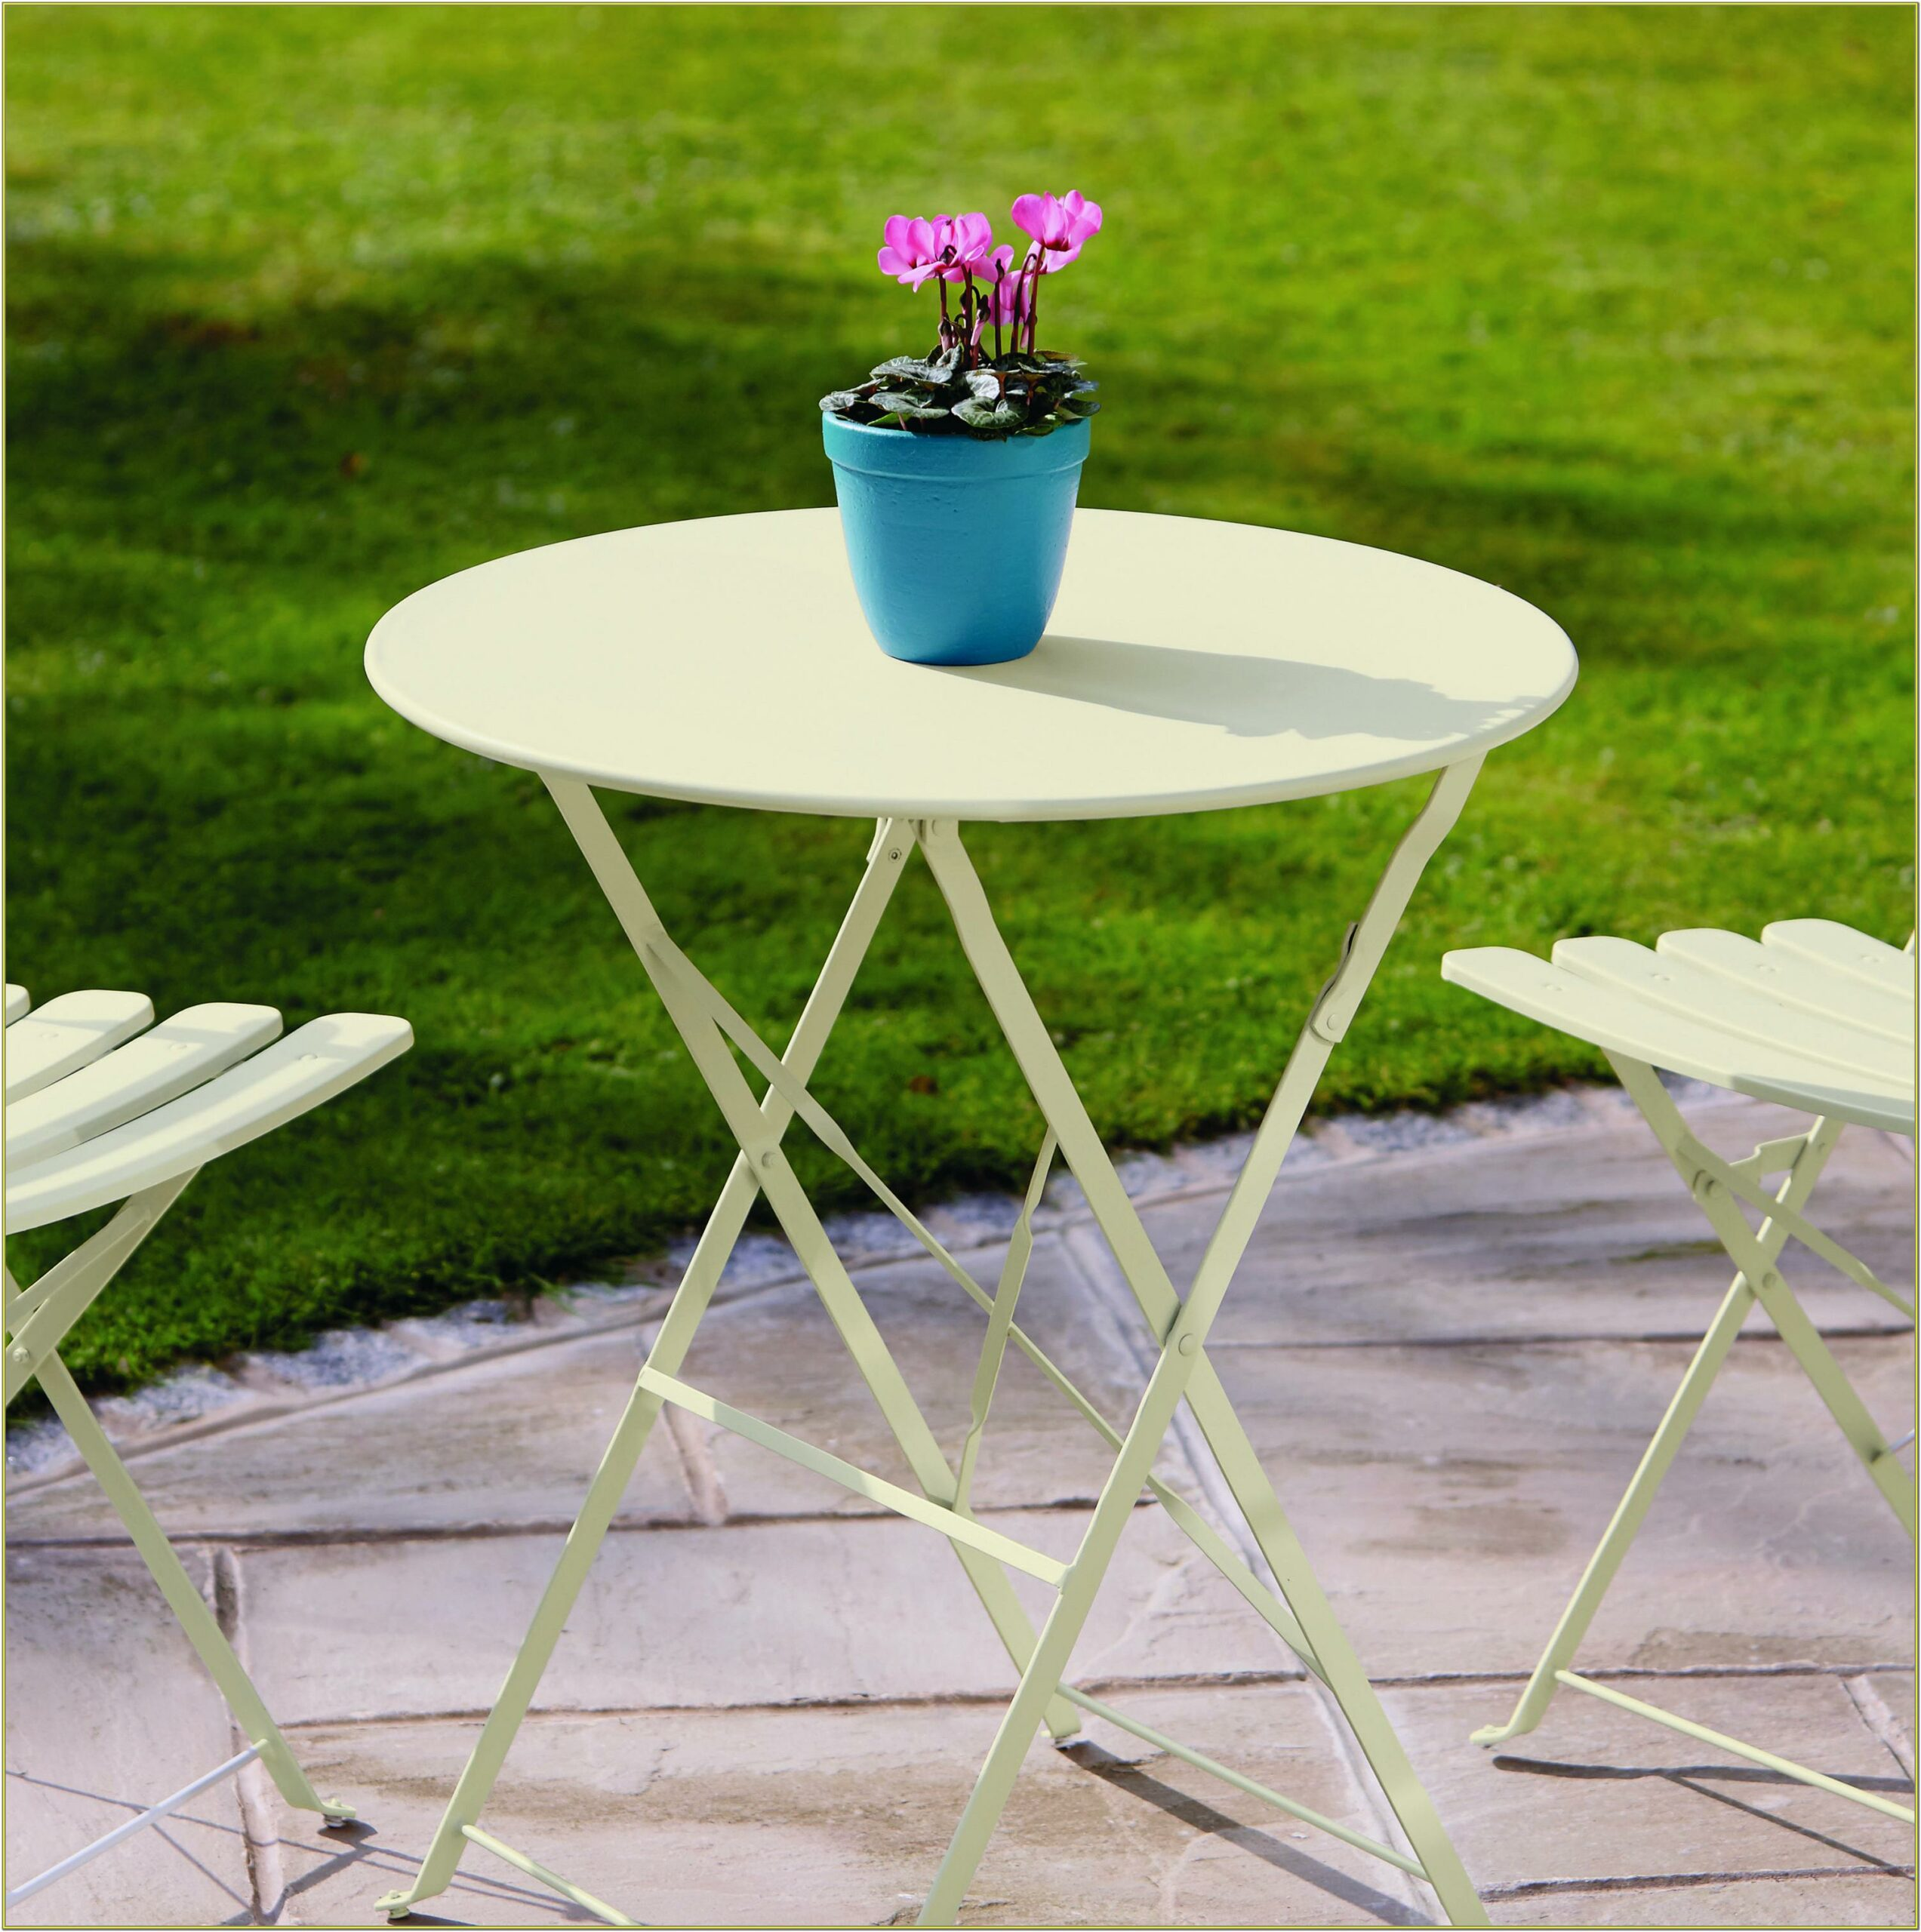 Ronseal Garden Furniture Paint Colours